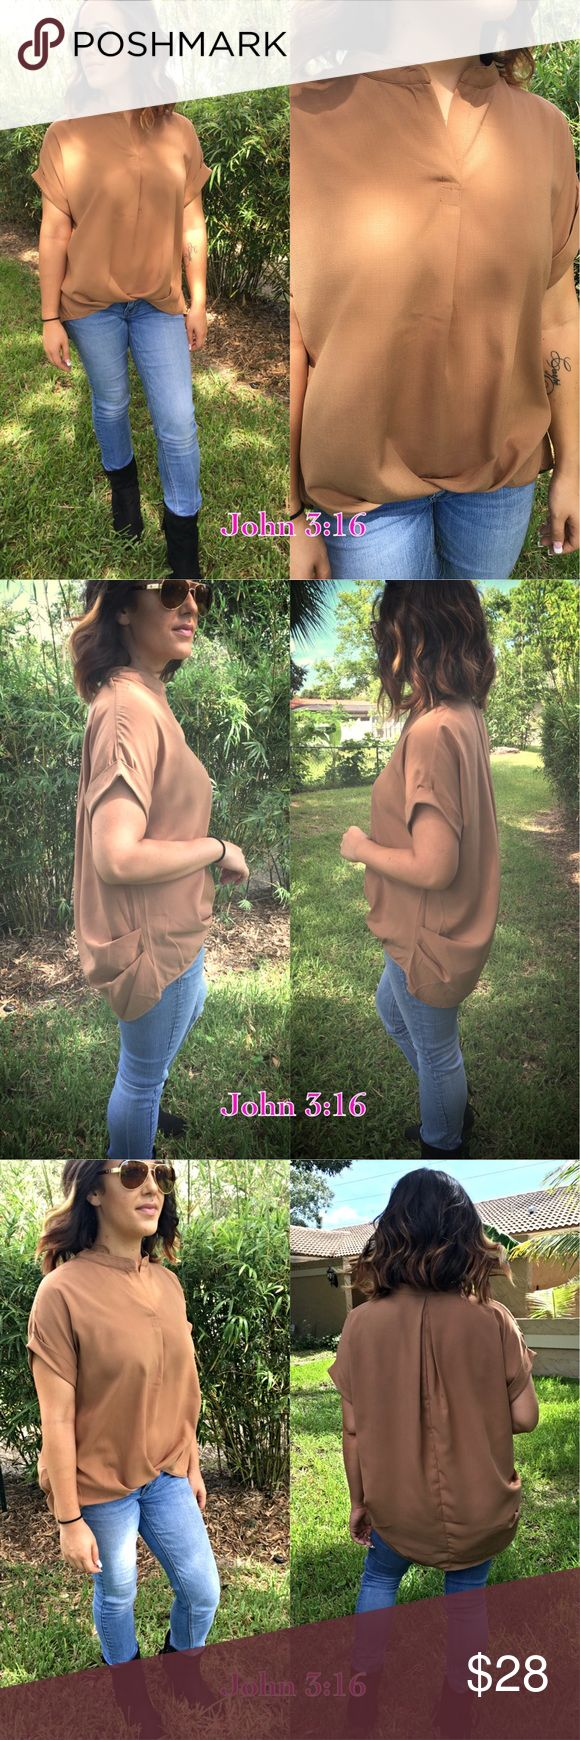 Chic mocha blouse This adorable top looks great on and feels amazing. Cuffed short sleeves with gathered detailing on sides and back. The front hem also has a gathered detailing that makes the top fun and different. TTS - Price is firm! S(2/4) M(6/8) L(10/12) Tops